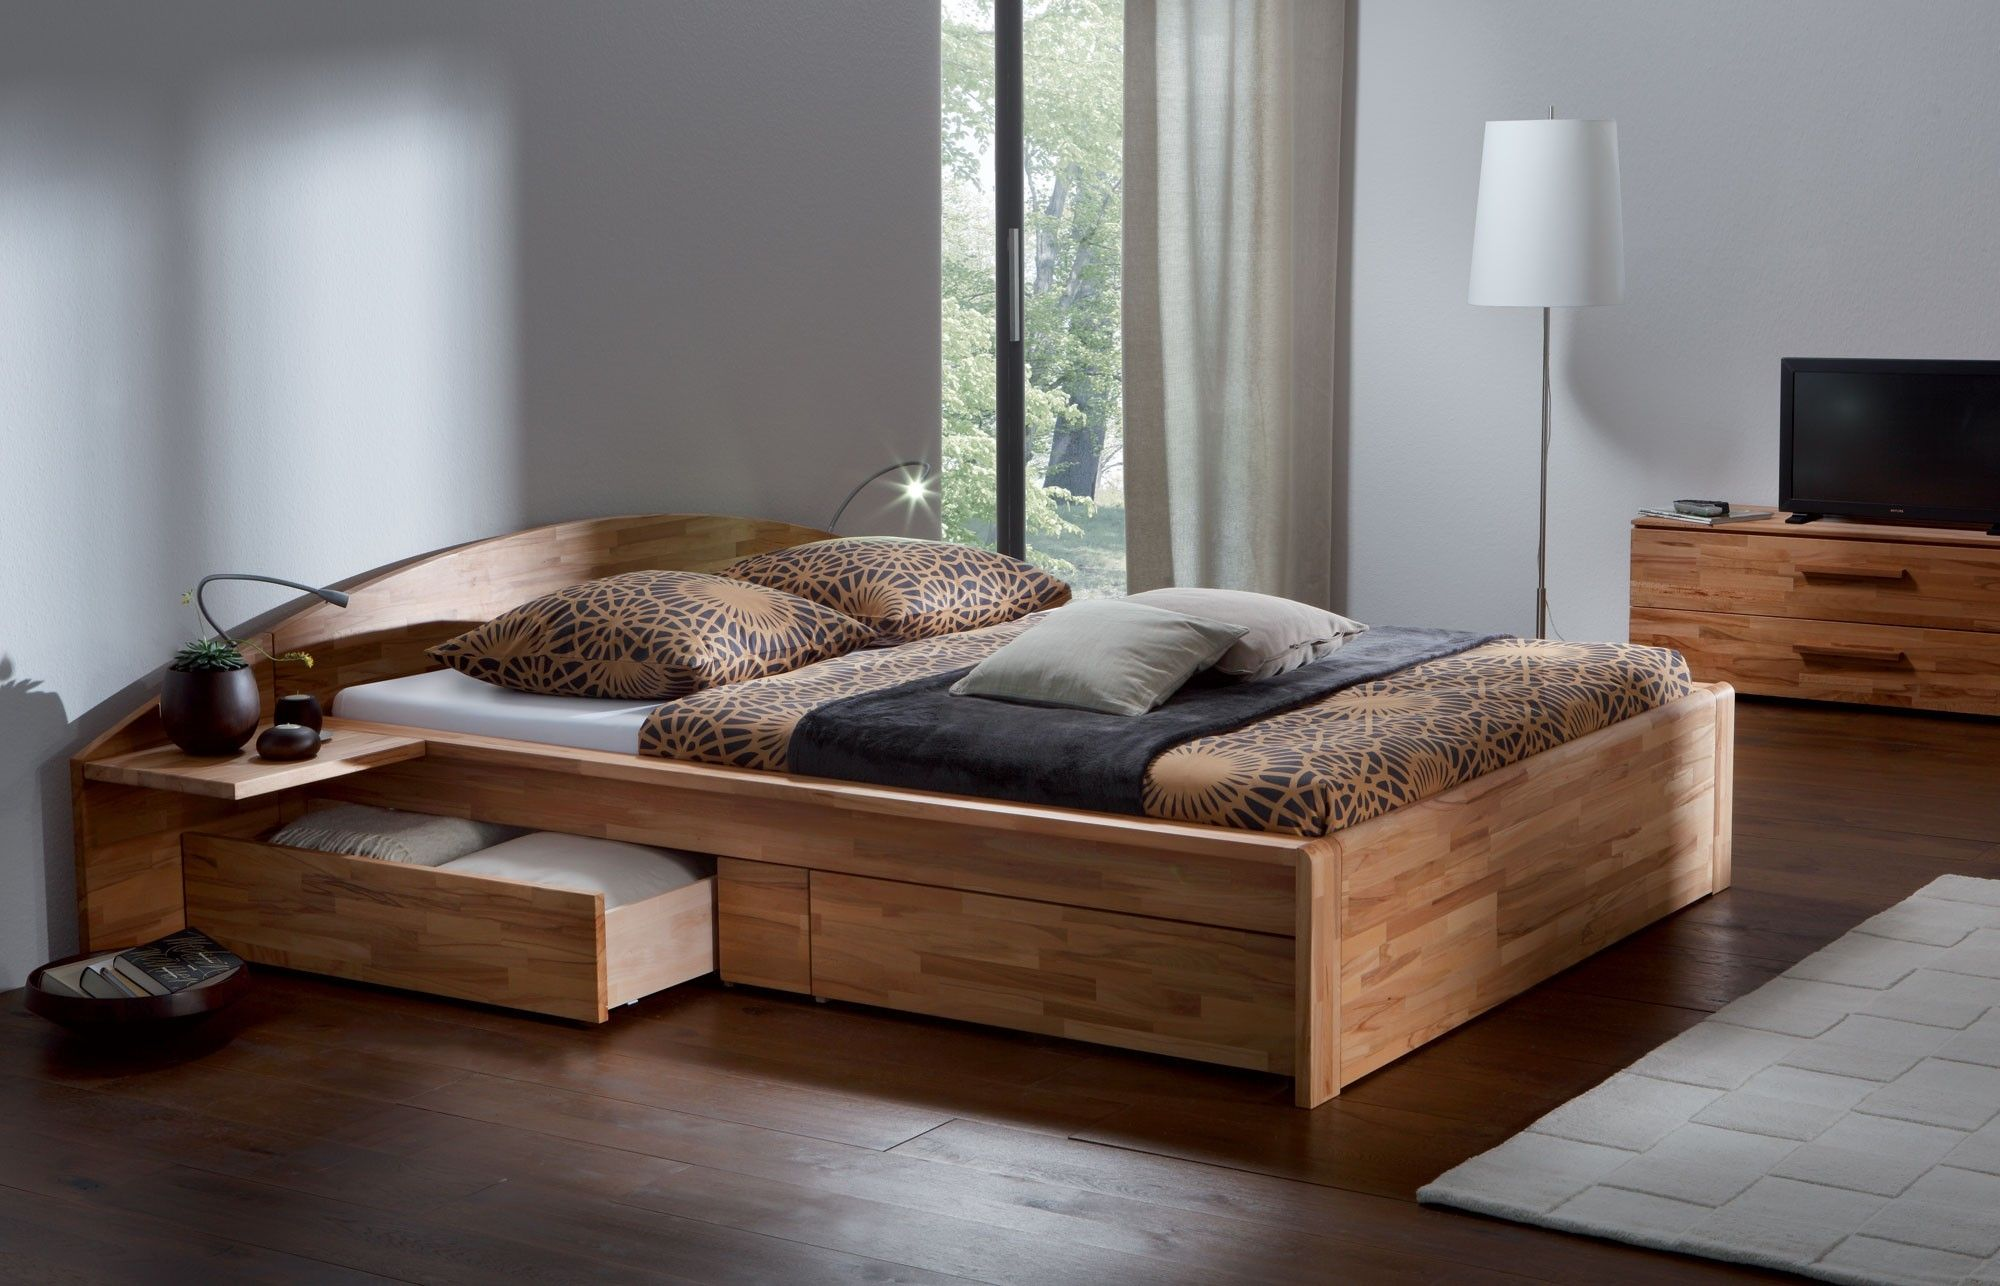 Solid Wood Platform Bed Frame With Drawers Selection Of Frames